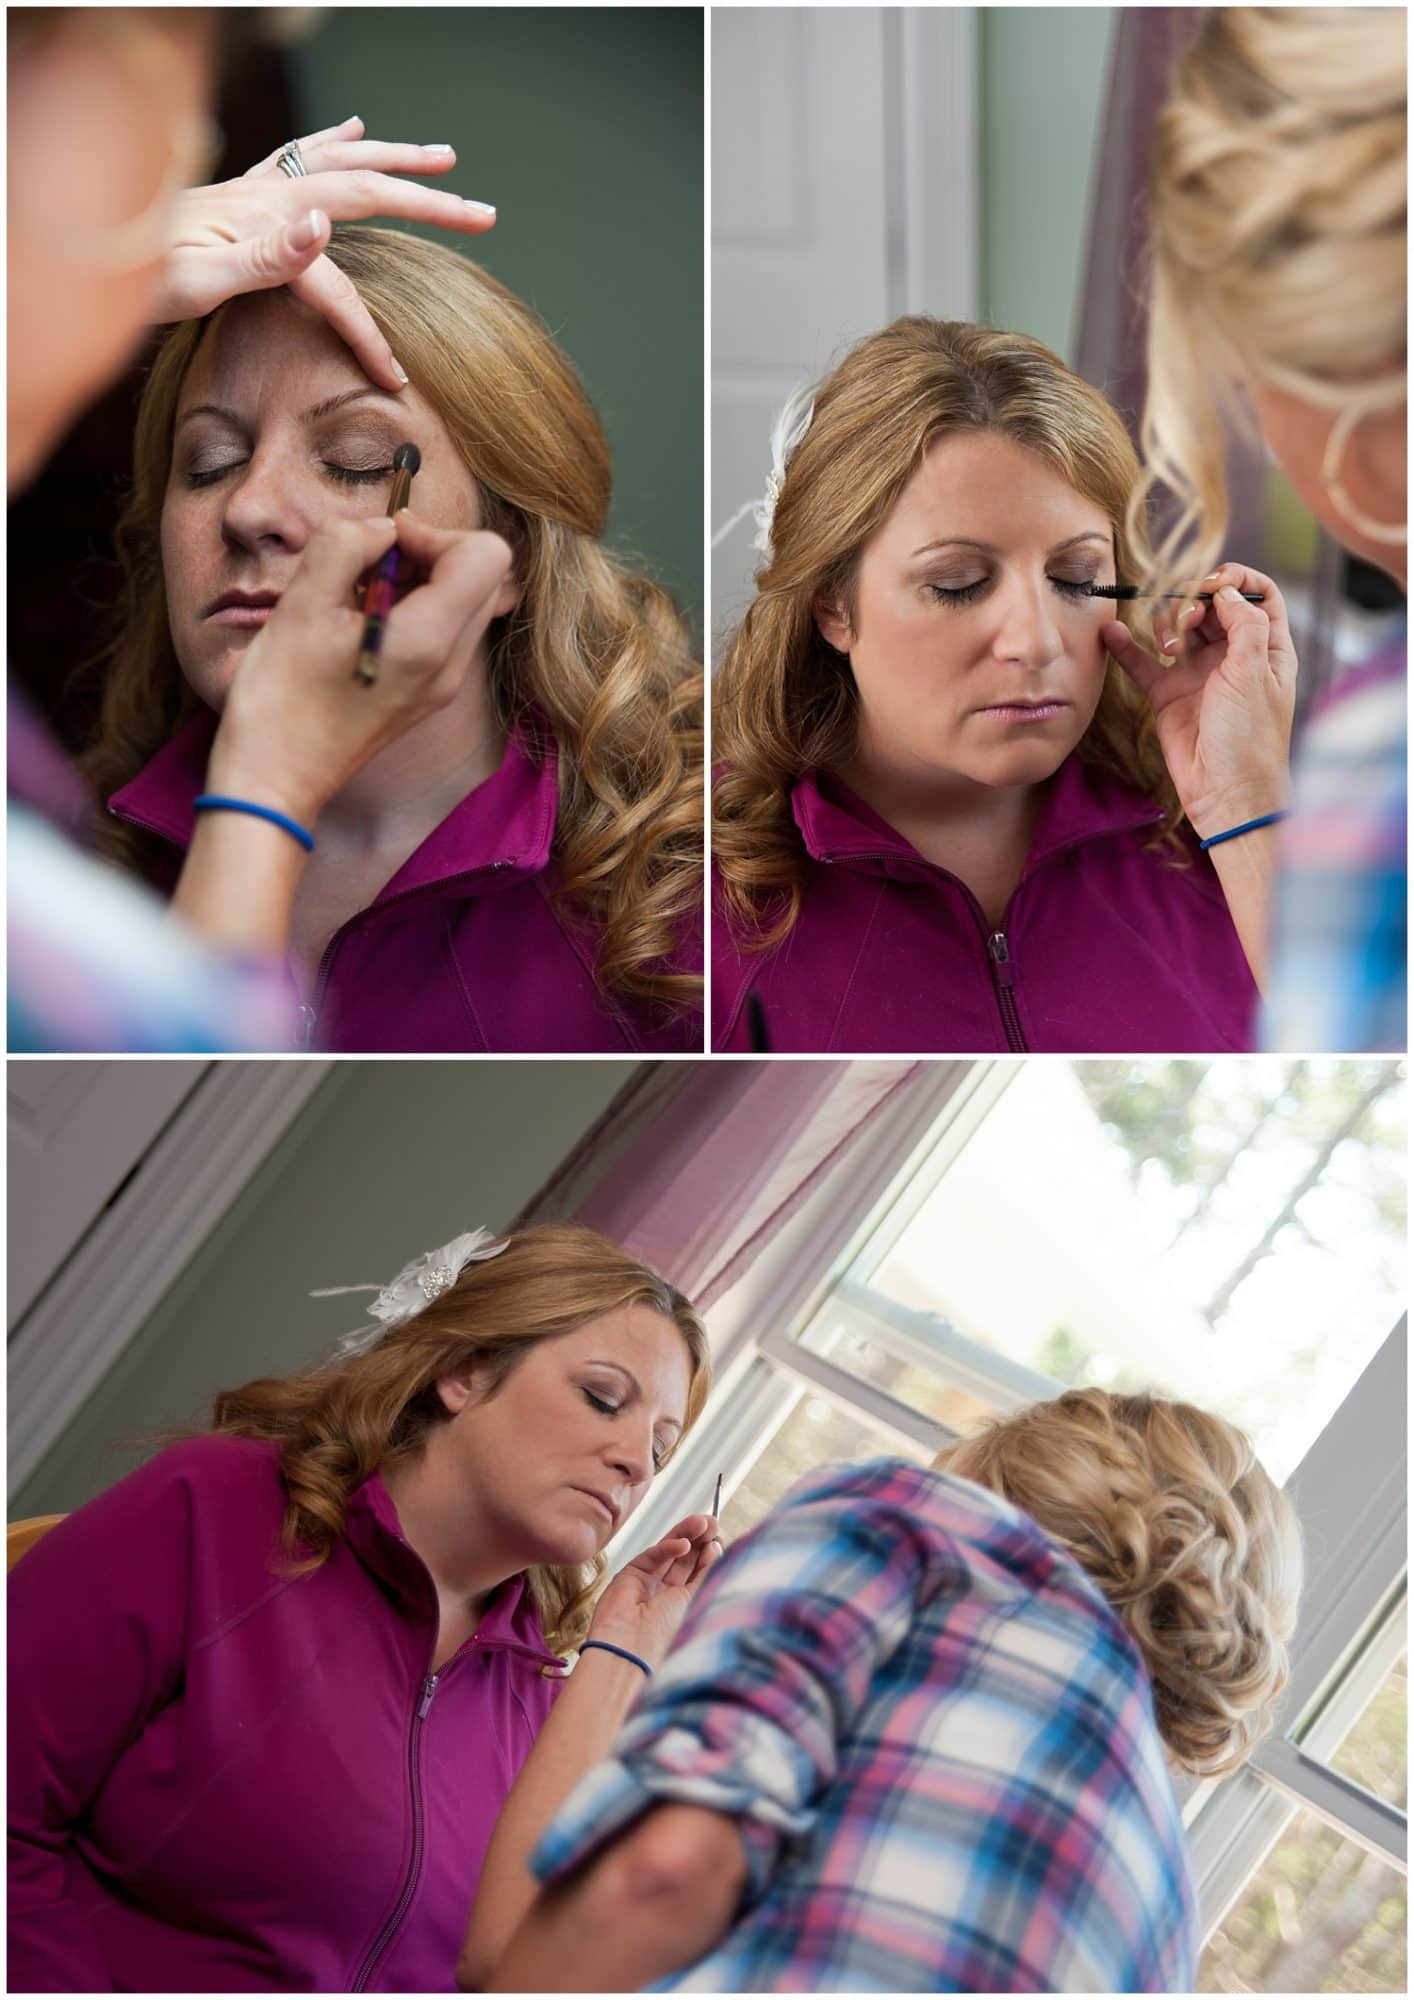 The bride having her makeup applied during her wedding bridal prep in Halifax, NS.